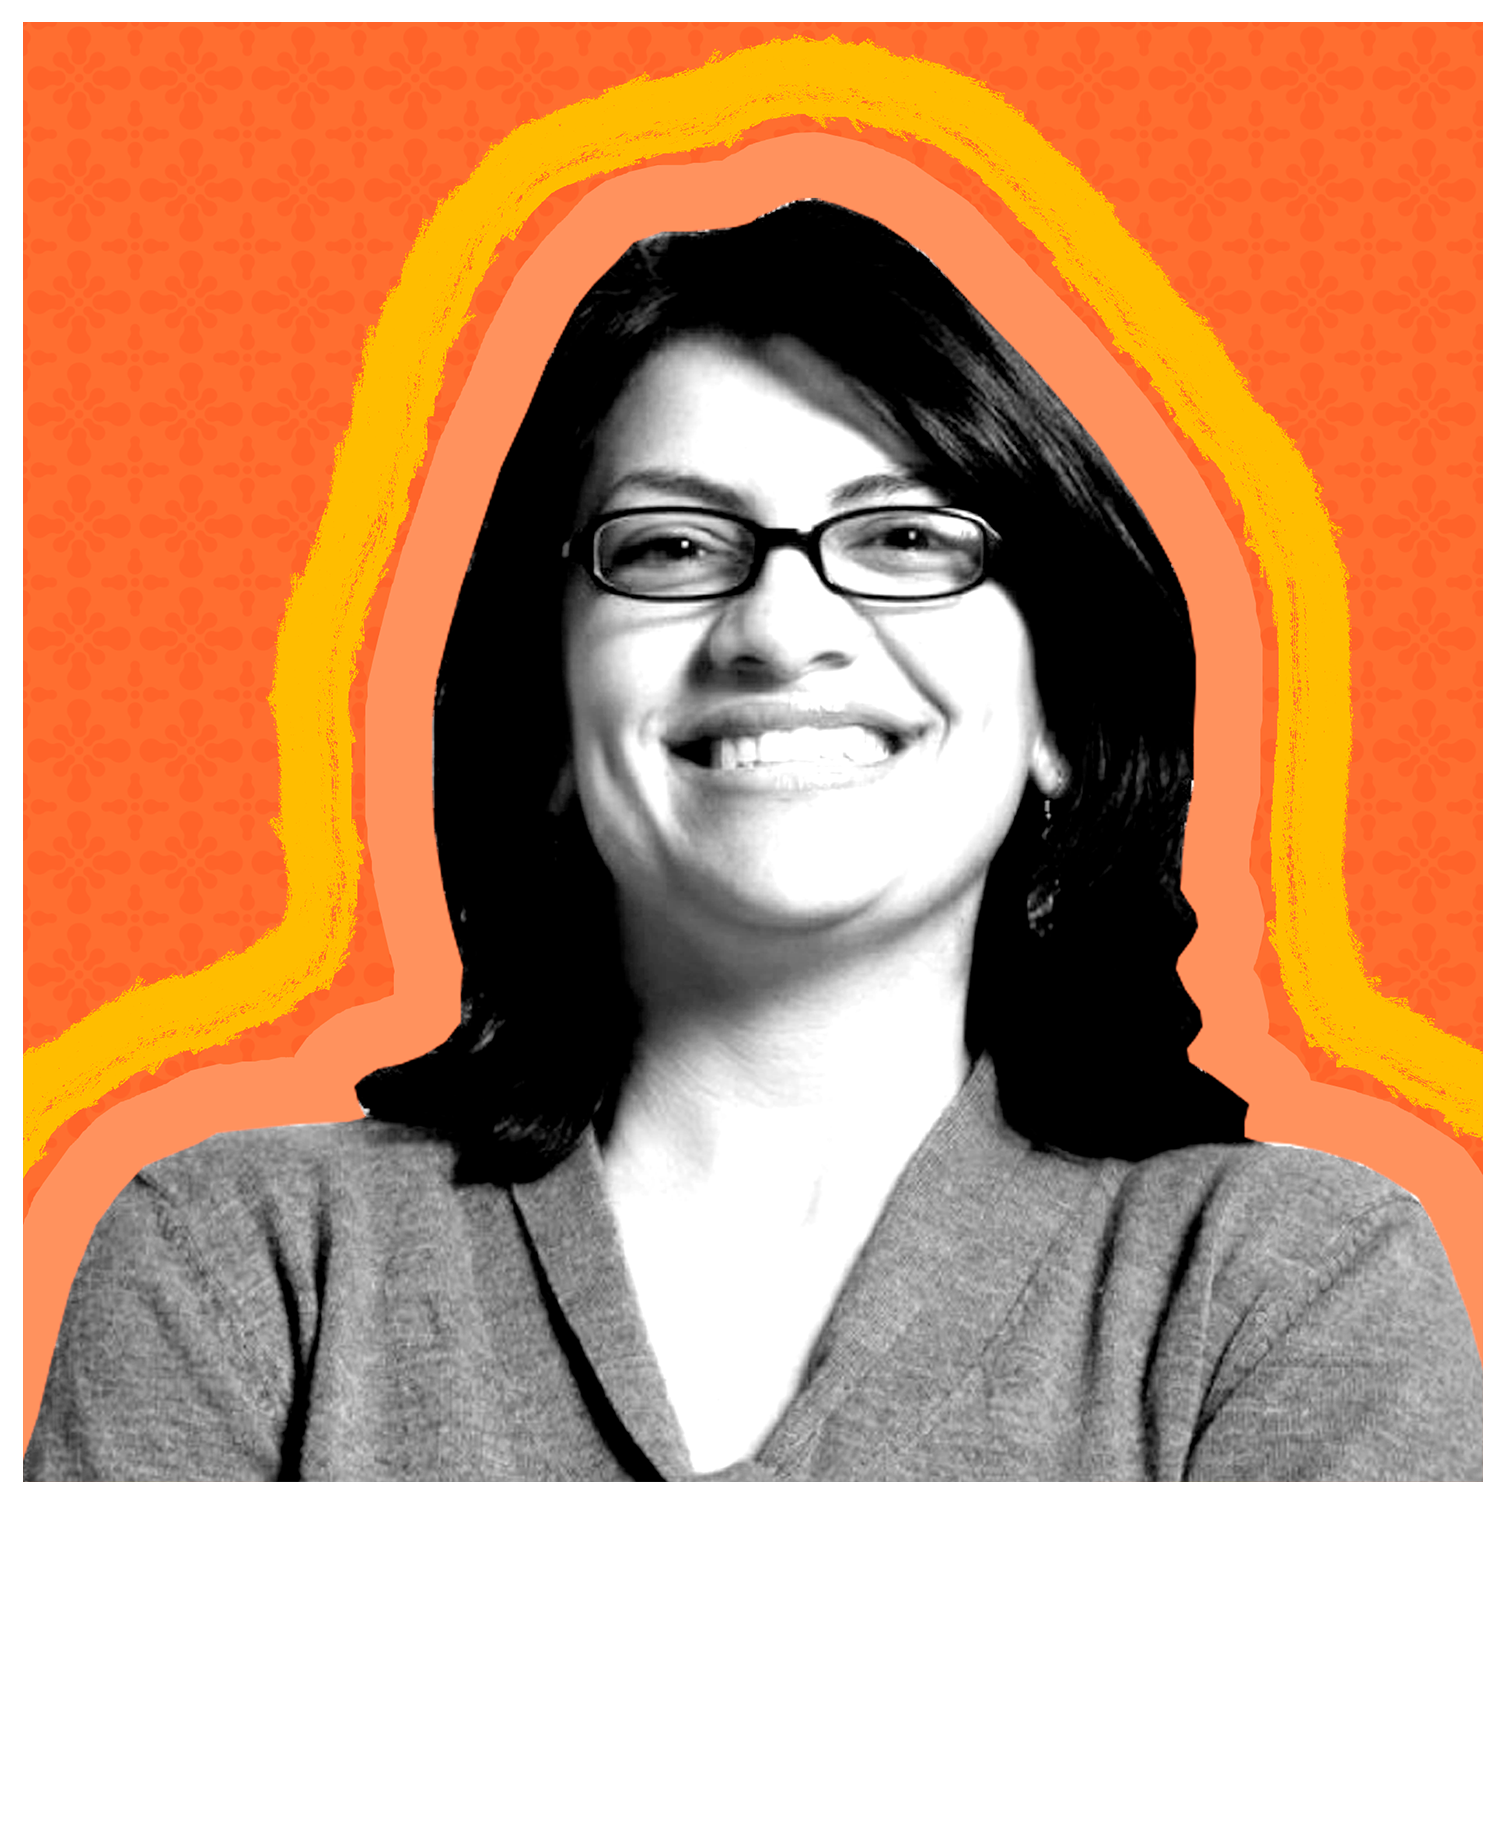 08262019---UWDA-Endorsement-Graphic-RashidaTlaib-Slide-v2